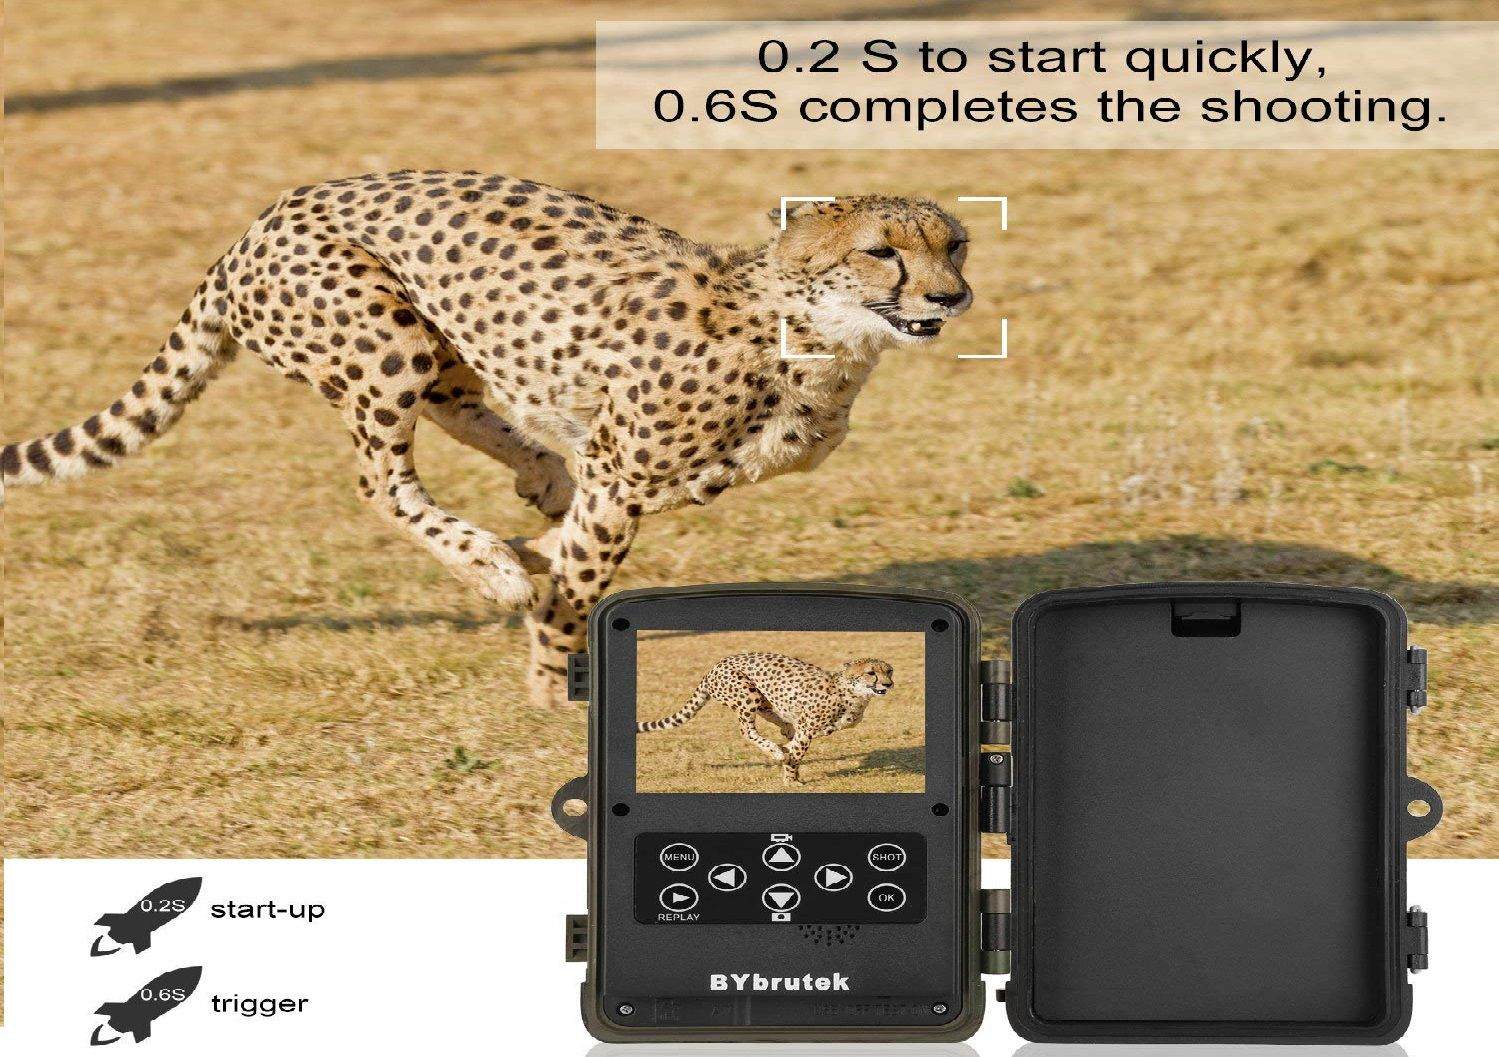 BYbrutek Hunting Game Camera Review